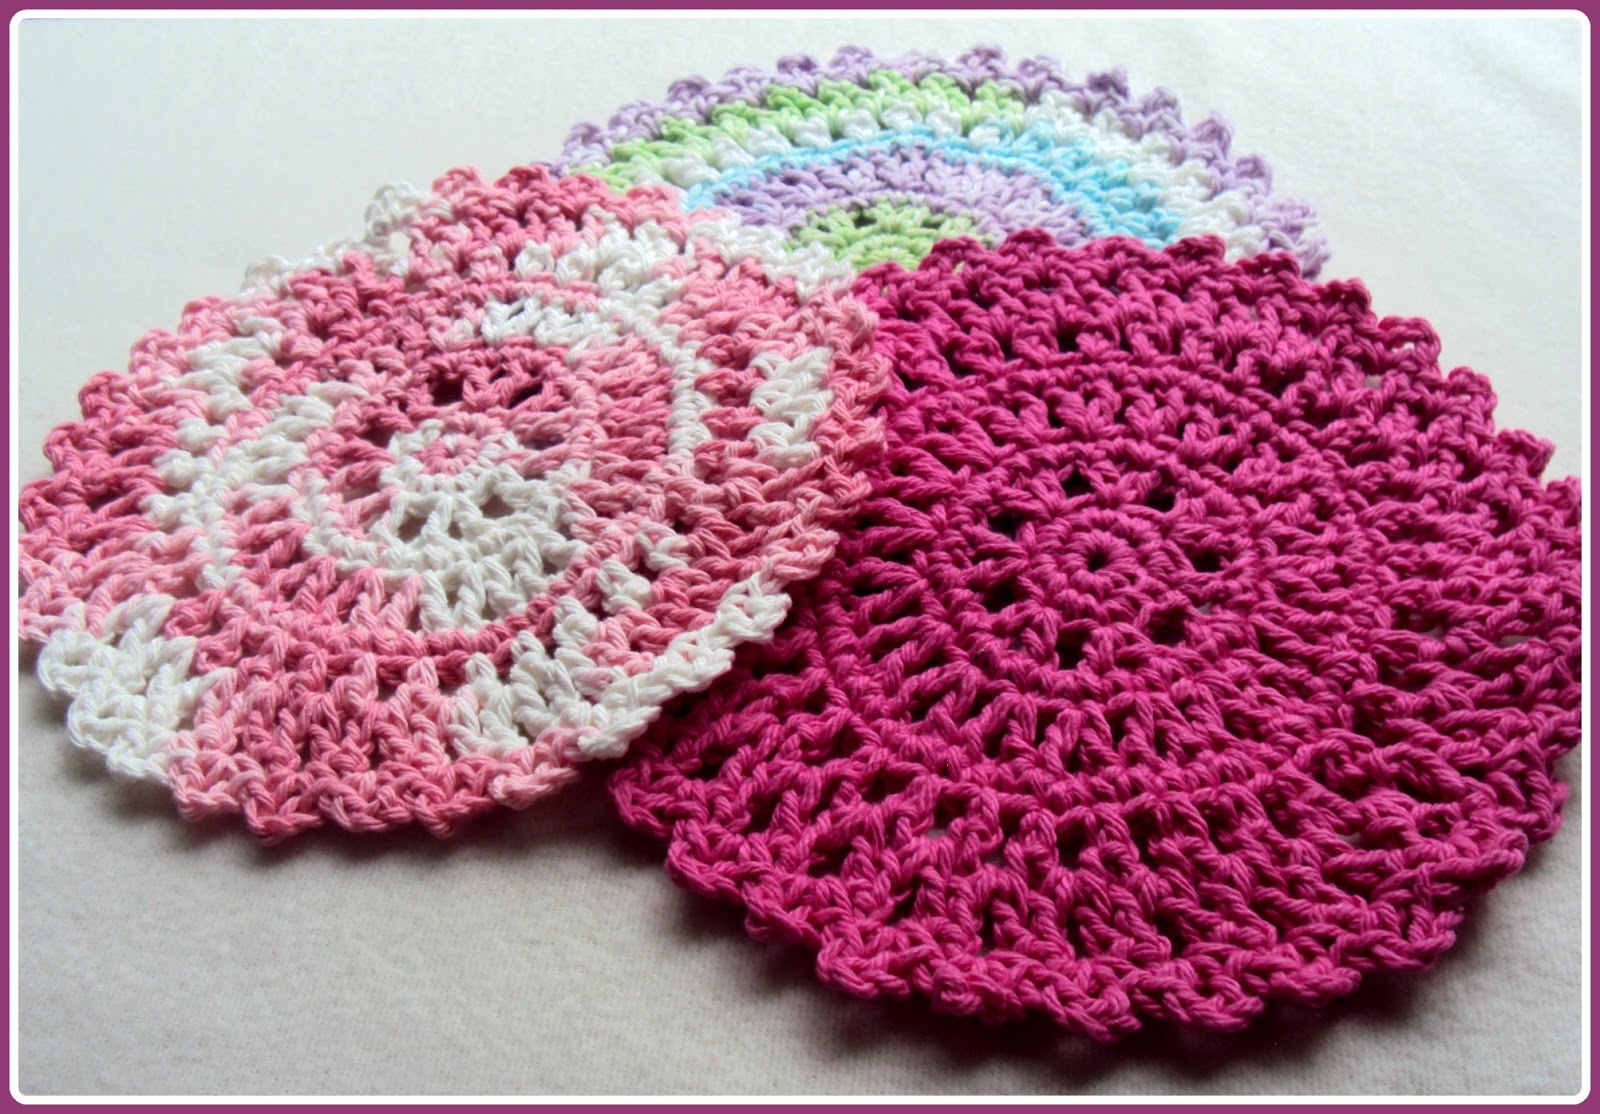 Cotton Crochet Yarn : ... up quickly and beautifully when using both acrylic or cotton yarns